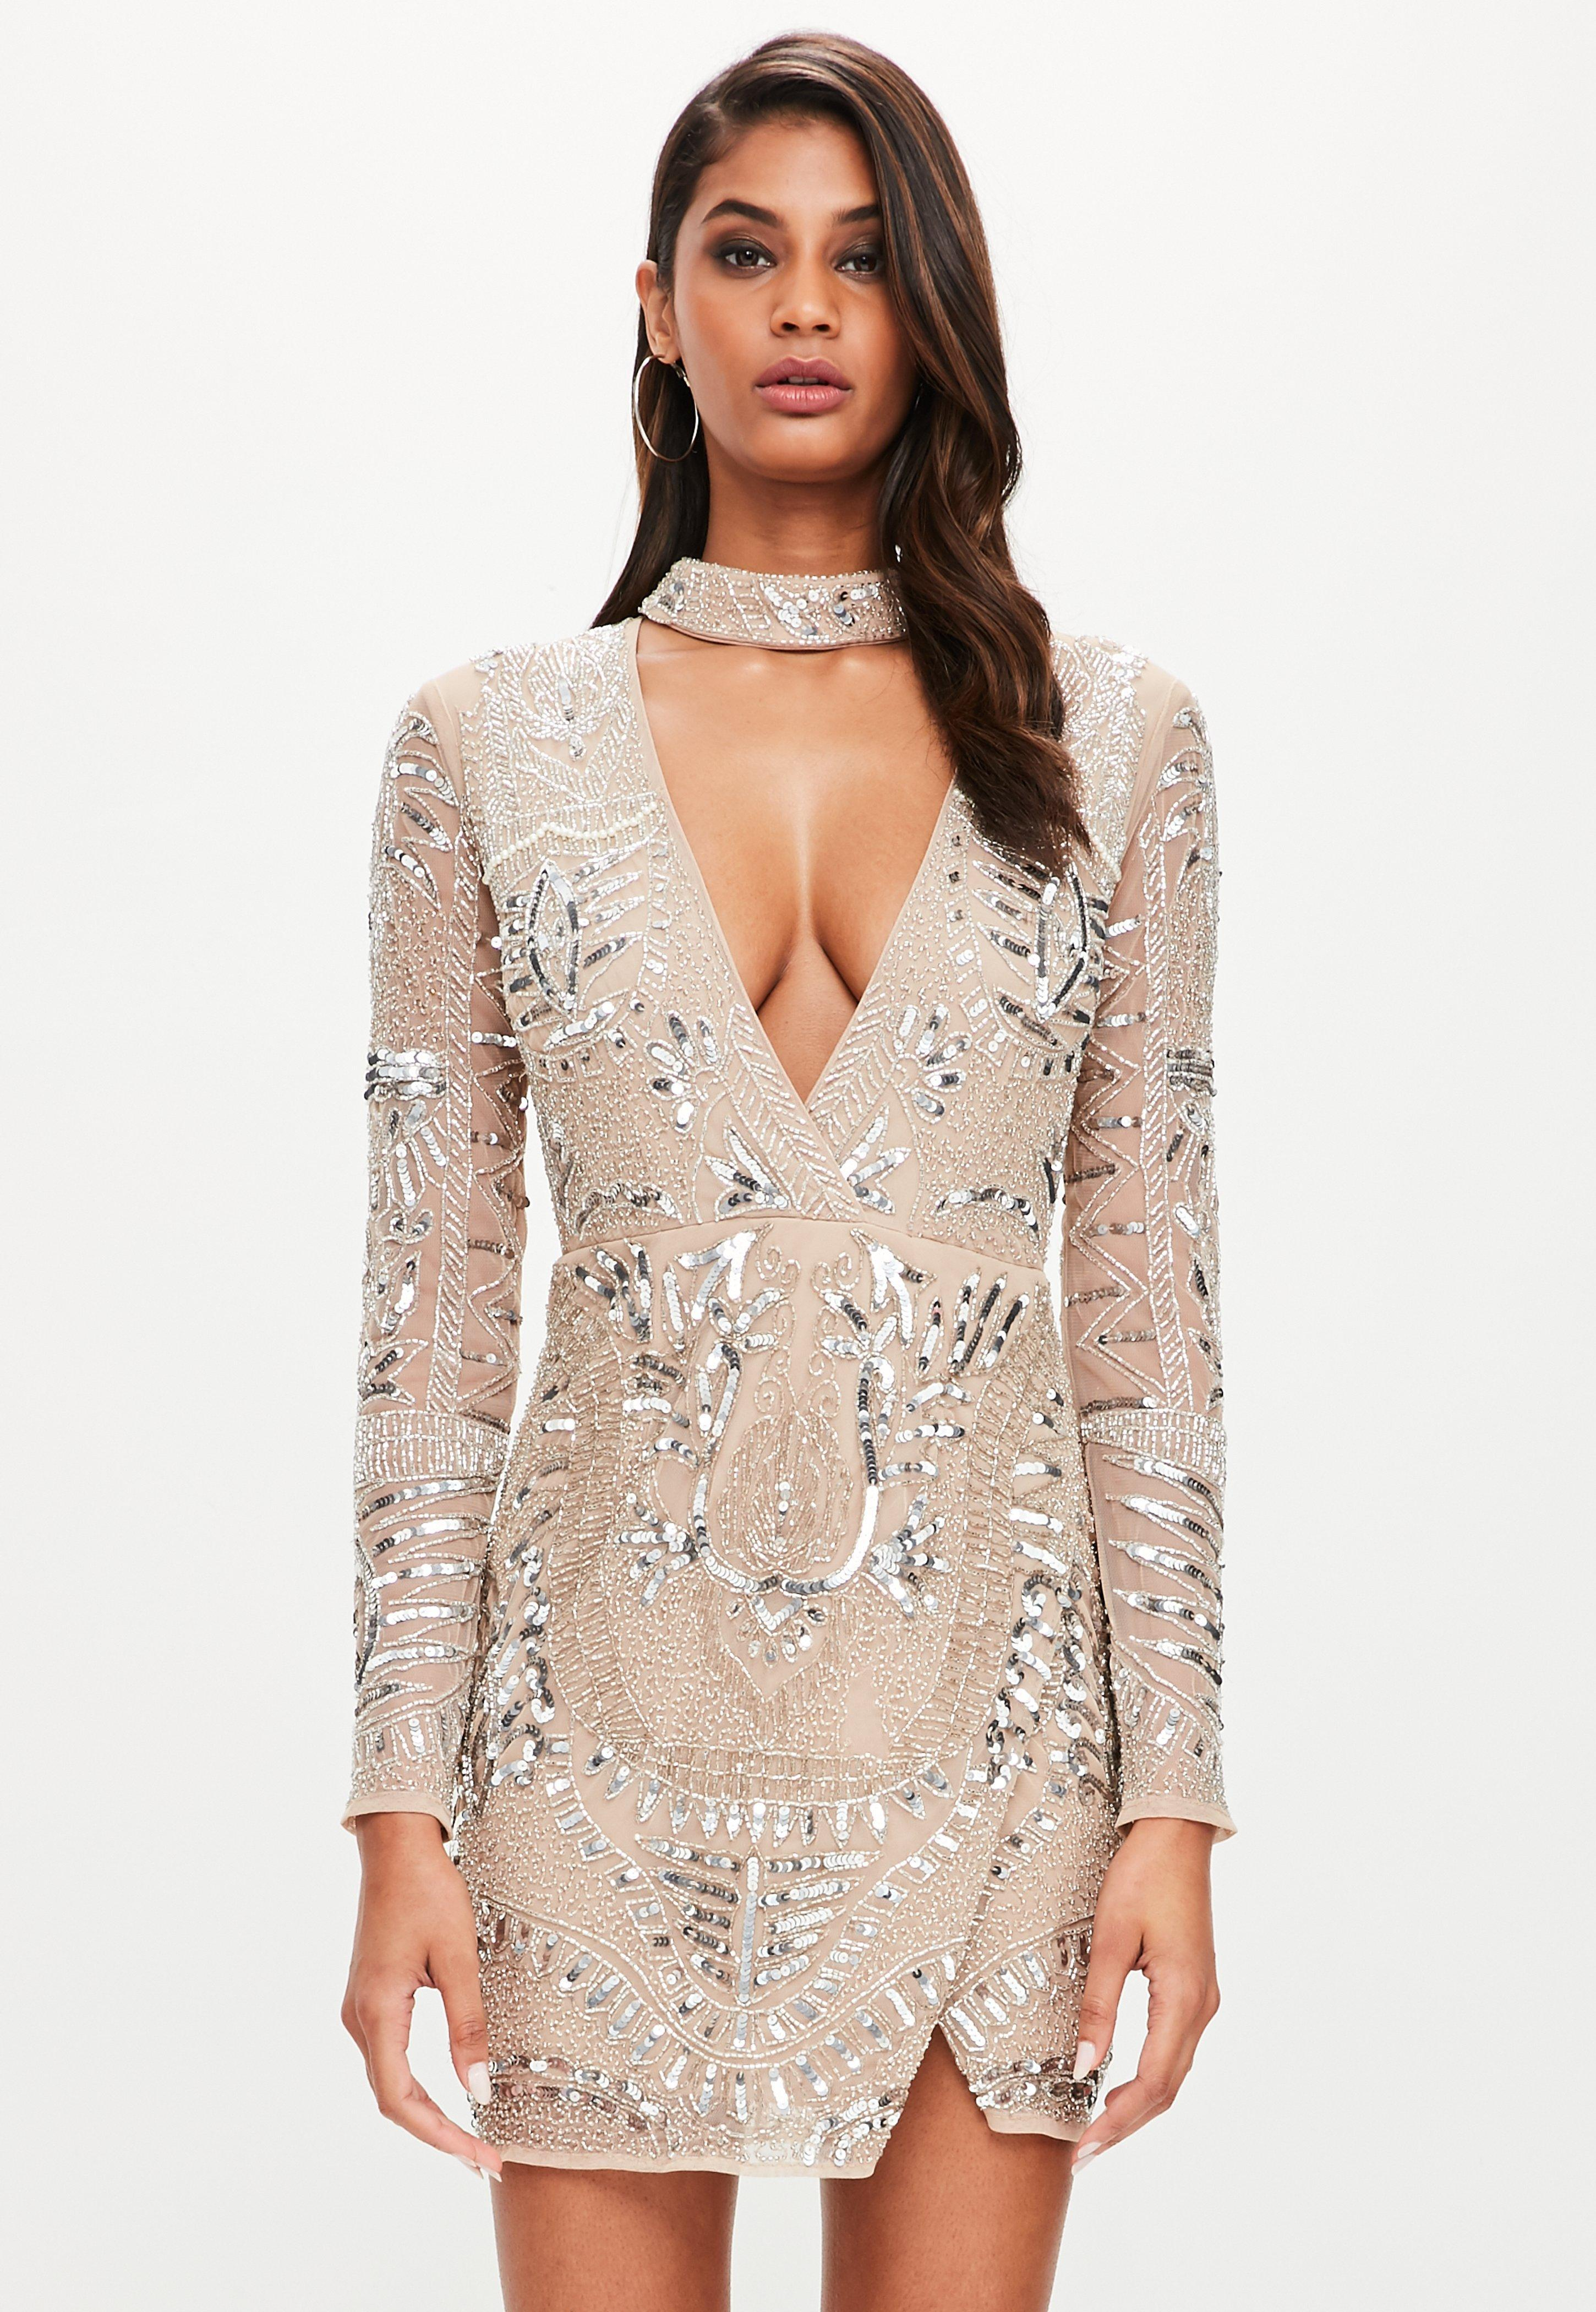 34eb41628bc5 Missguided Peace + Love Silver Choker Neck Embellished Dress in ...